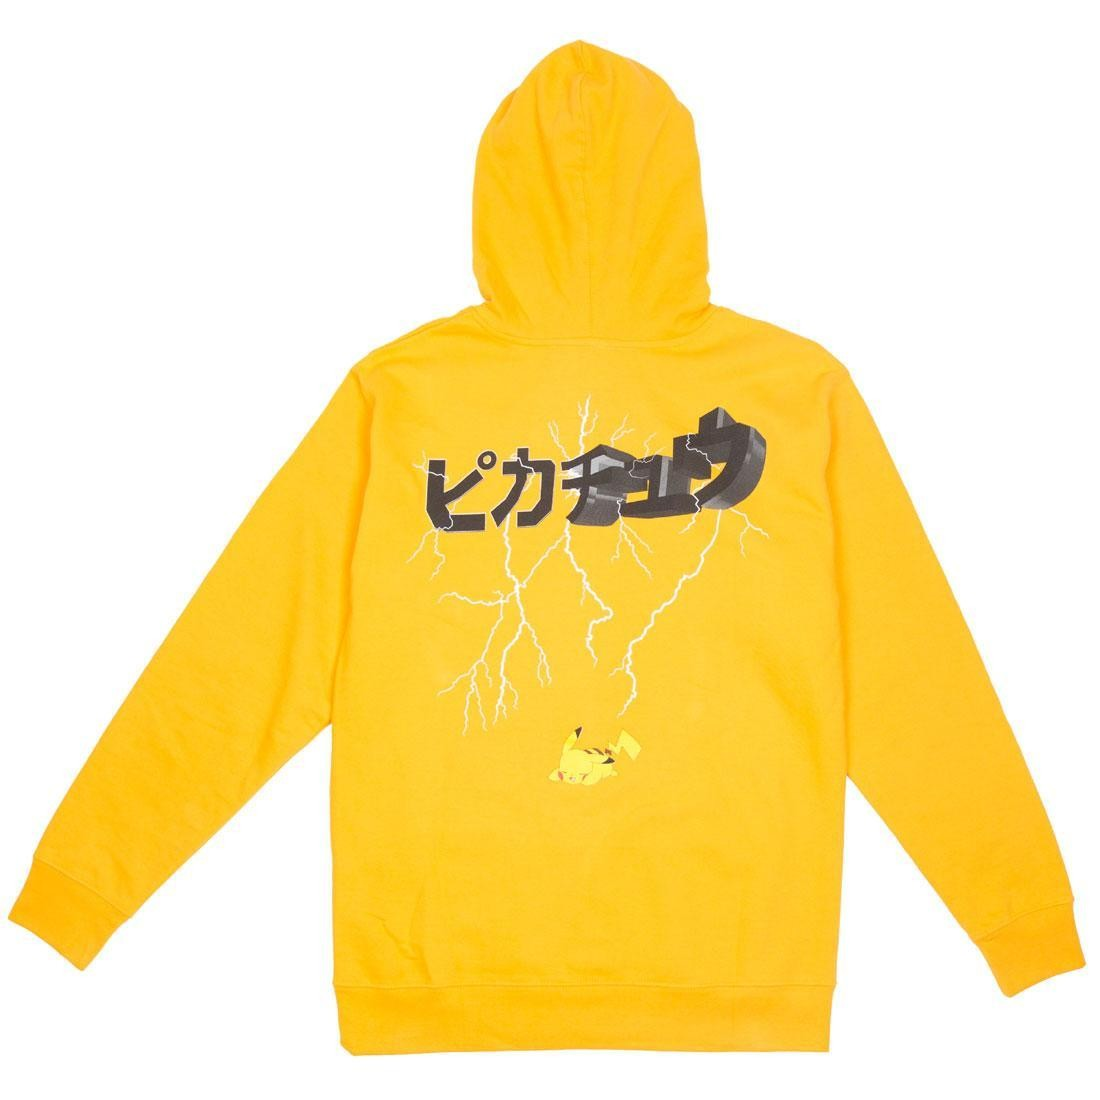 BAIT Exclusive 10 Deep x Pokemon Men Lightning Strikes Hoody (yellow)